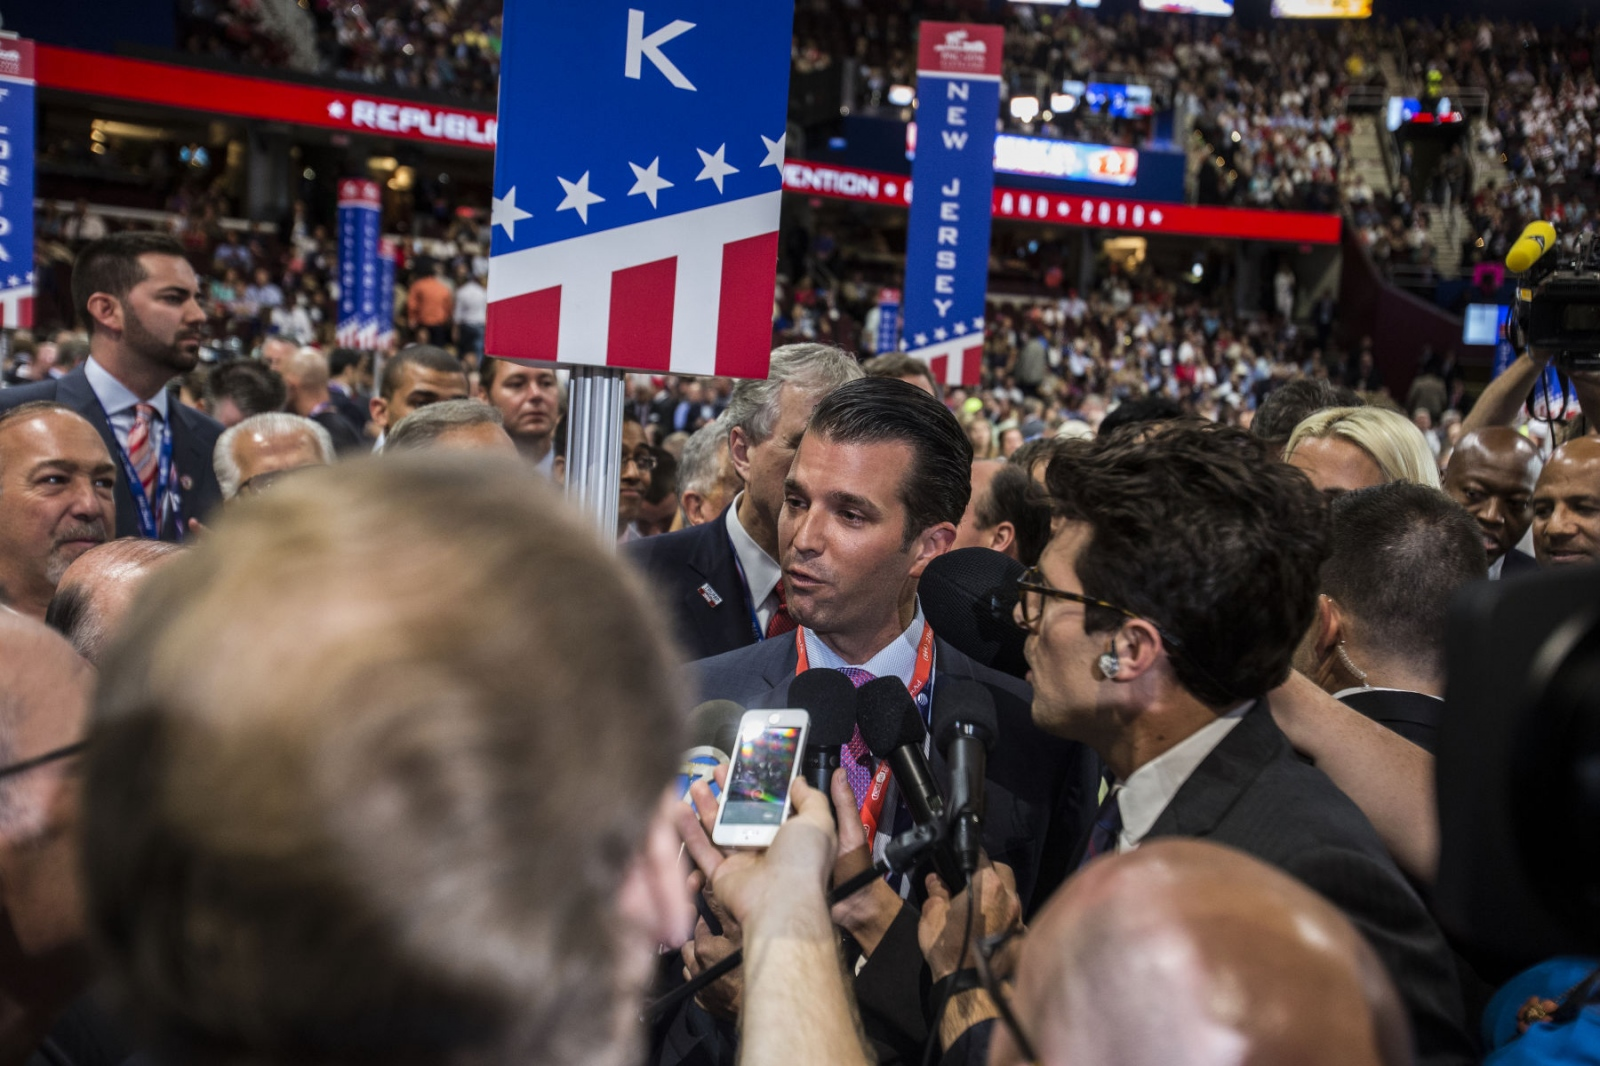 Donald Trump Jr. cast New York City's vote for Donald Trump for President of the United States at the Republican National Convention. July 20, 2016 (Kevin C Downs).